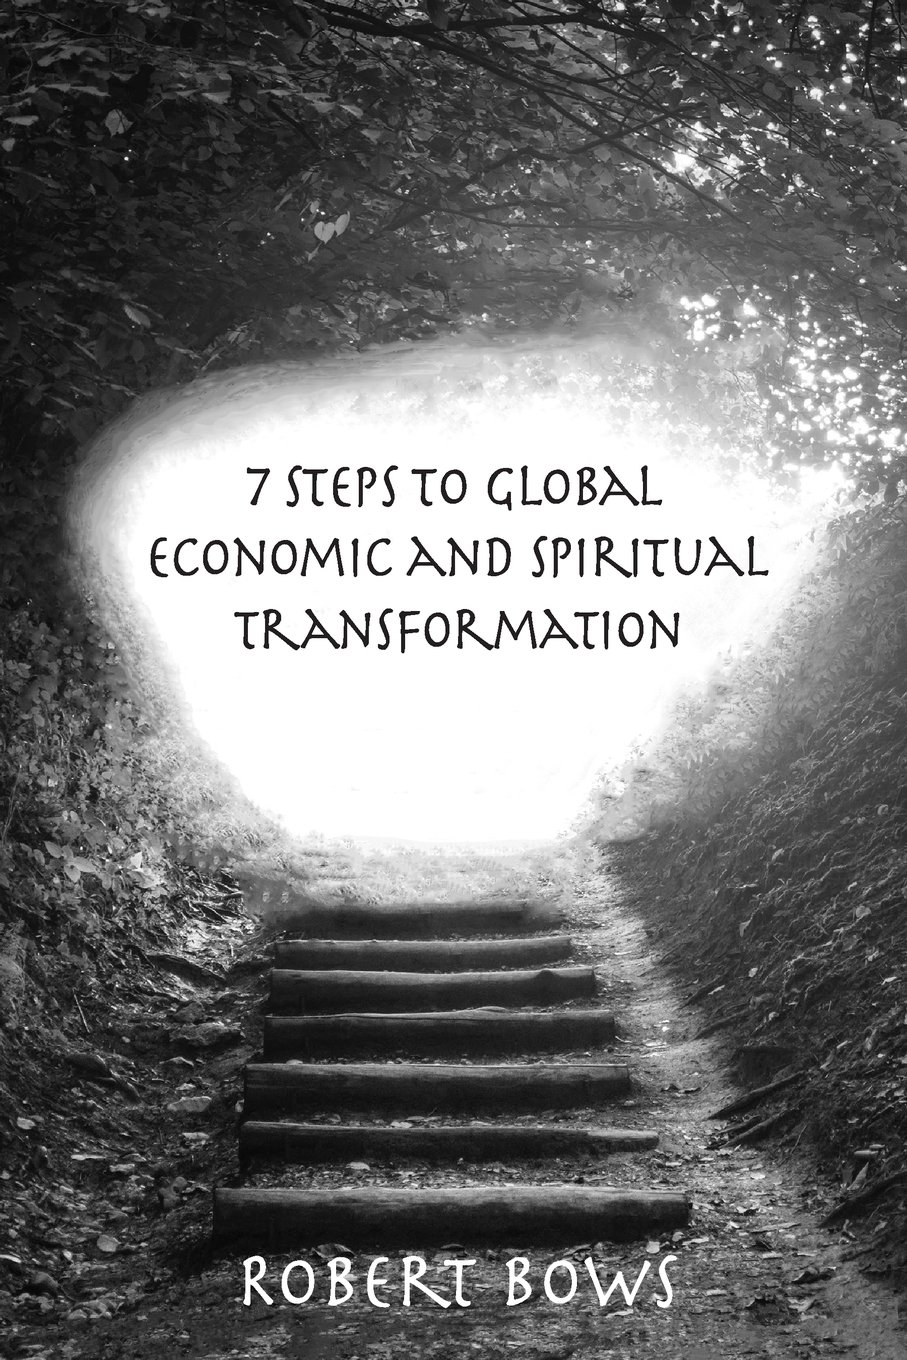 7 Steps to Global Economic and Spiritual Transformation ...